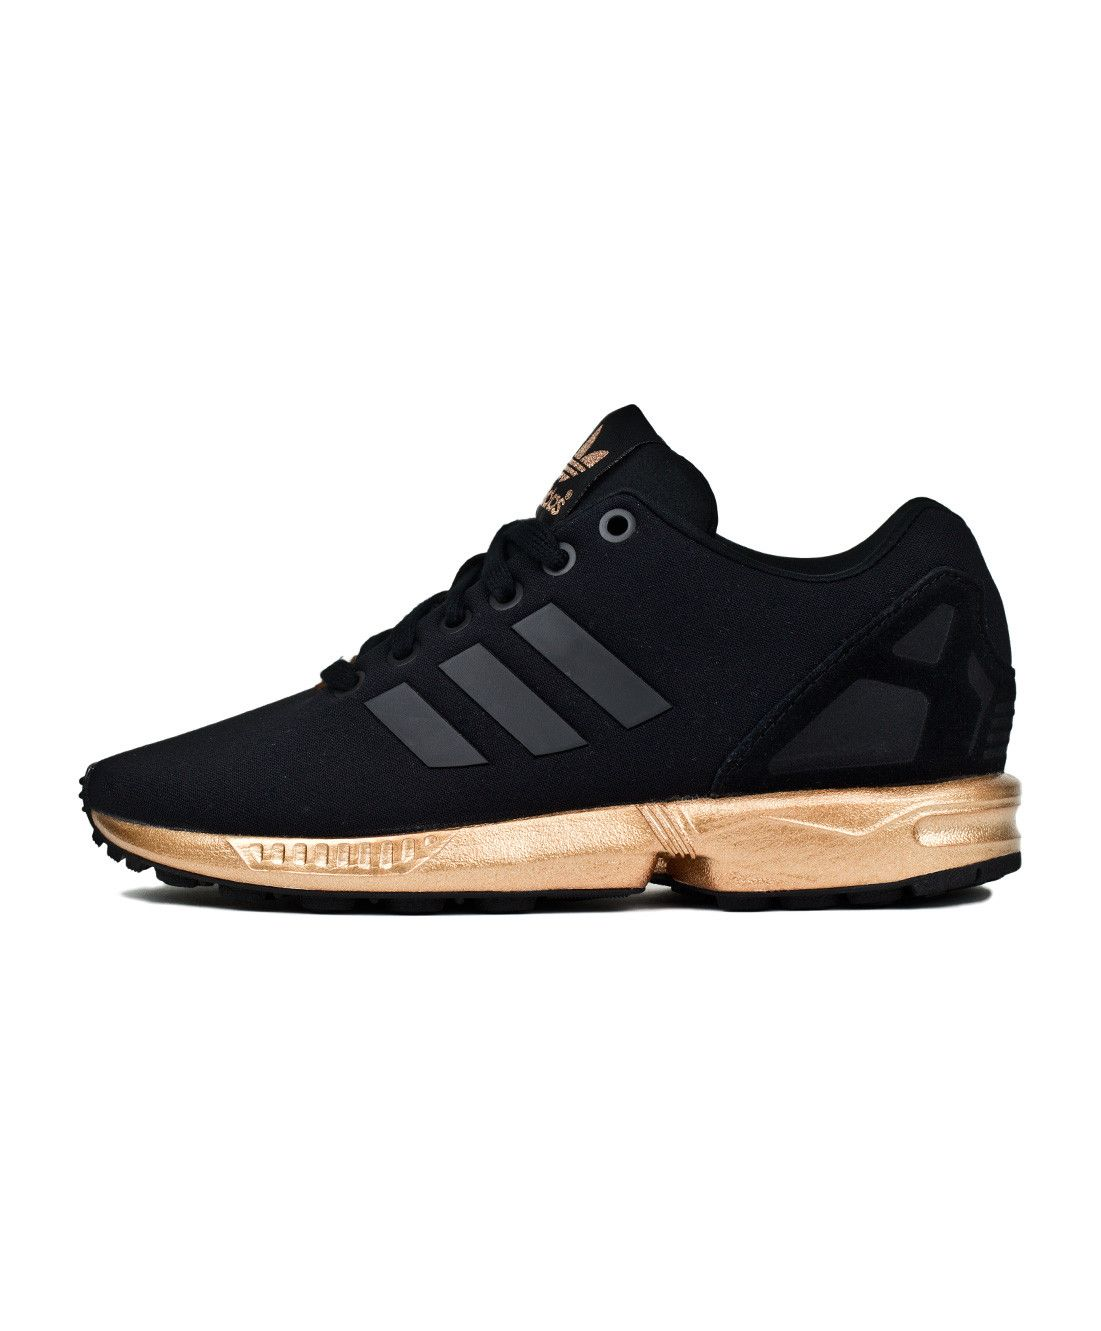 reputable site 66cde d2a06 S78977, core black, black, adidas, women, womens, women s, ZX flux, zx flux,  flux, gold, copper